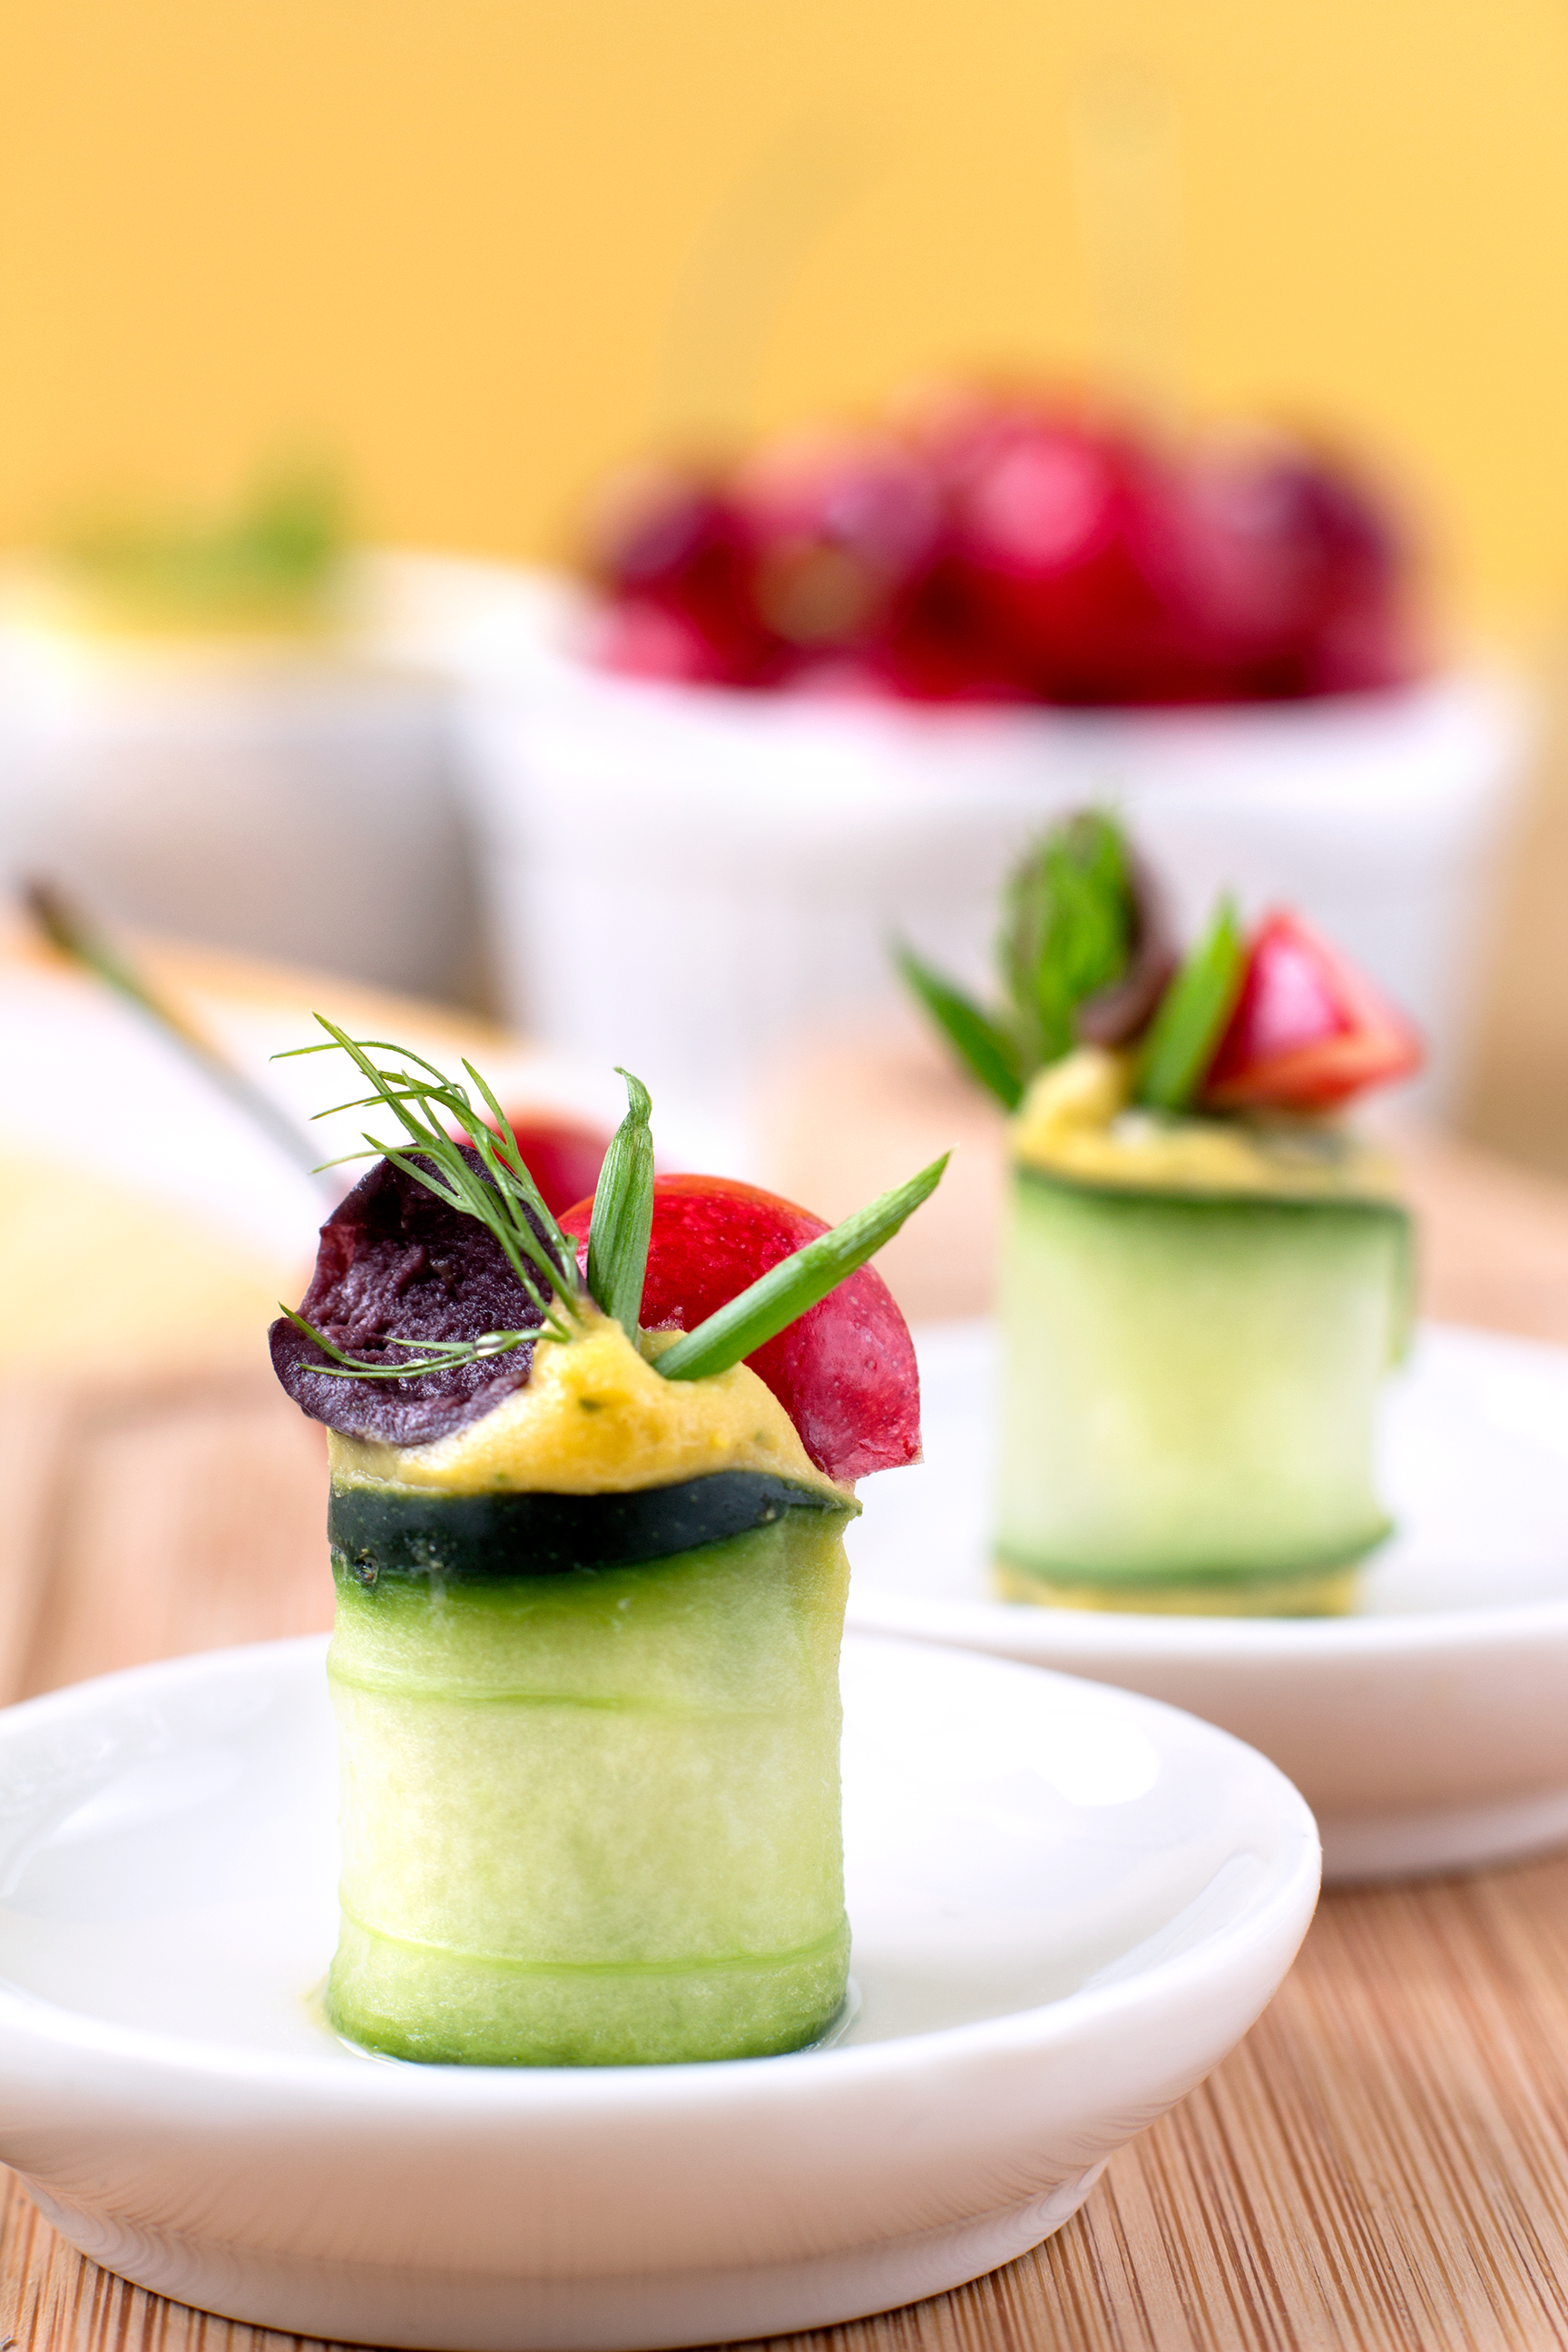 Finger Food Vegan // Senza Glutine // dietetico! Rotolini di CETRIOLI agrodolci, crema di MANGO, CILIEGIE e olive. Sano e buono!Con versione RAW inclusa e tabella nutrizionale| #Vegan #glutenfree light and healthy appetizer! CUCUMBER, MANGO puree, CHERRY, Olives and chickpeas! Can be #raw // delicious